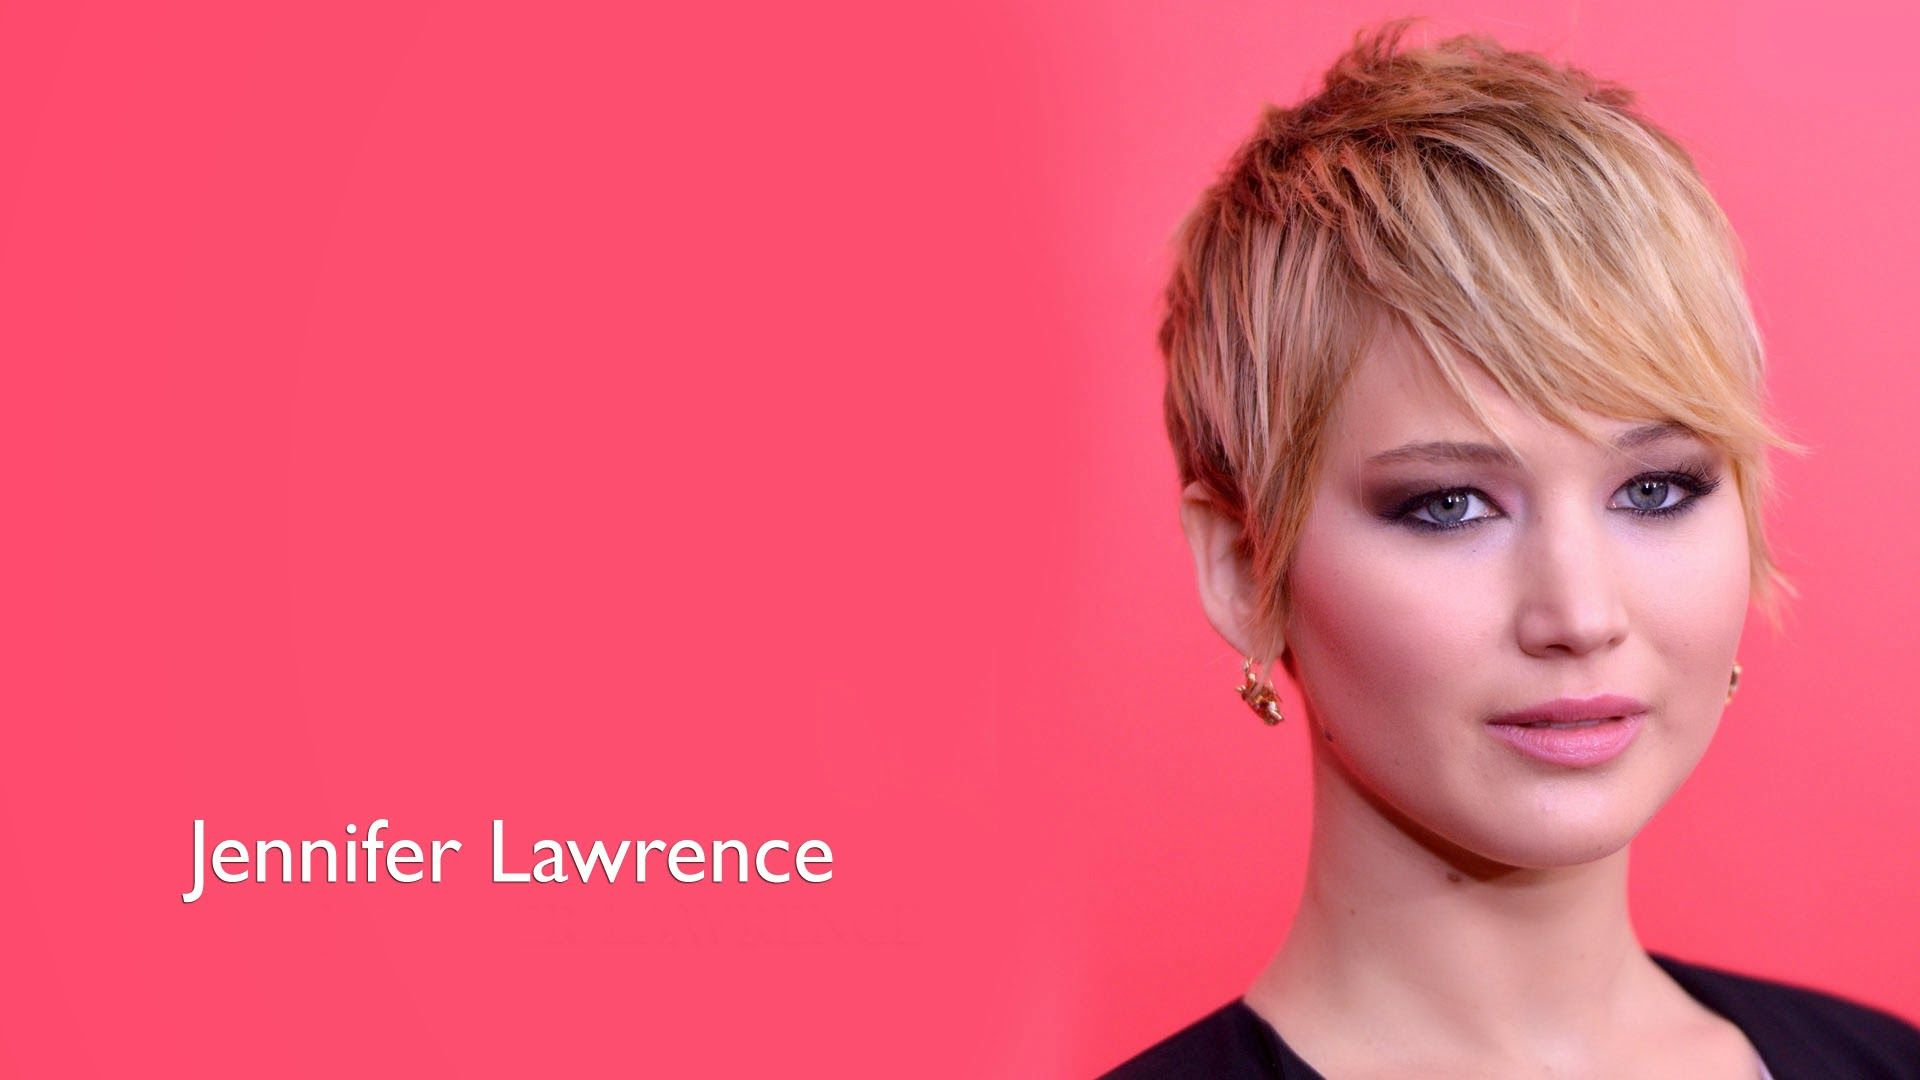 awesome jennifer lawrence wallpapers 2015 http://www.designsnext